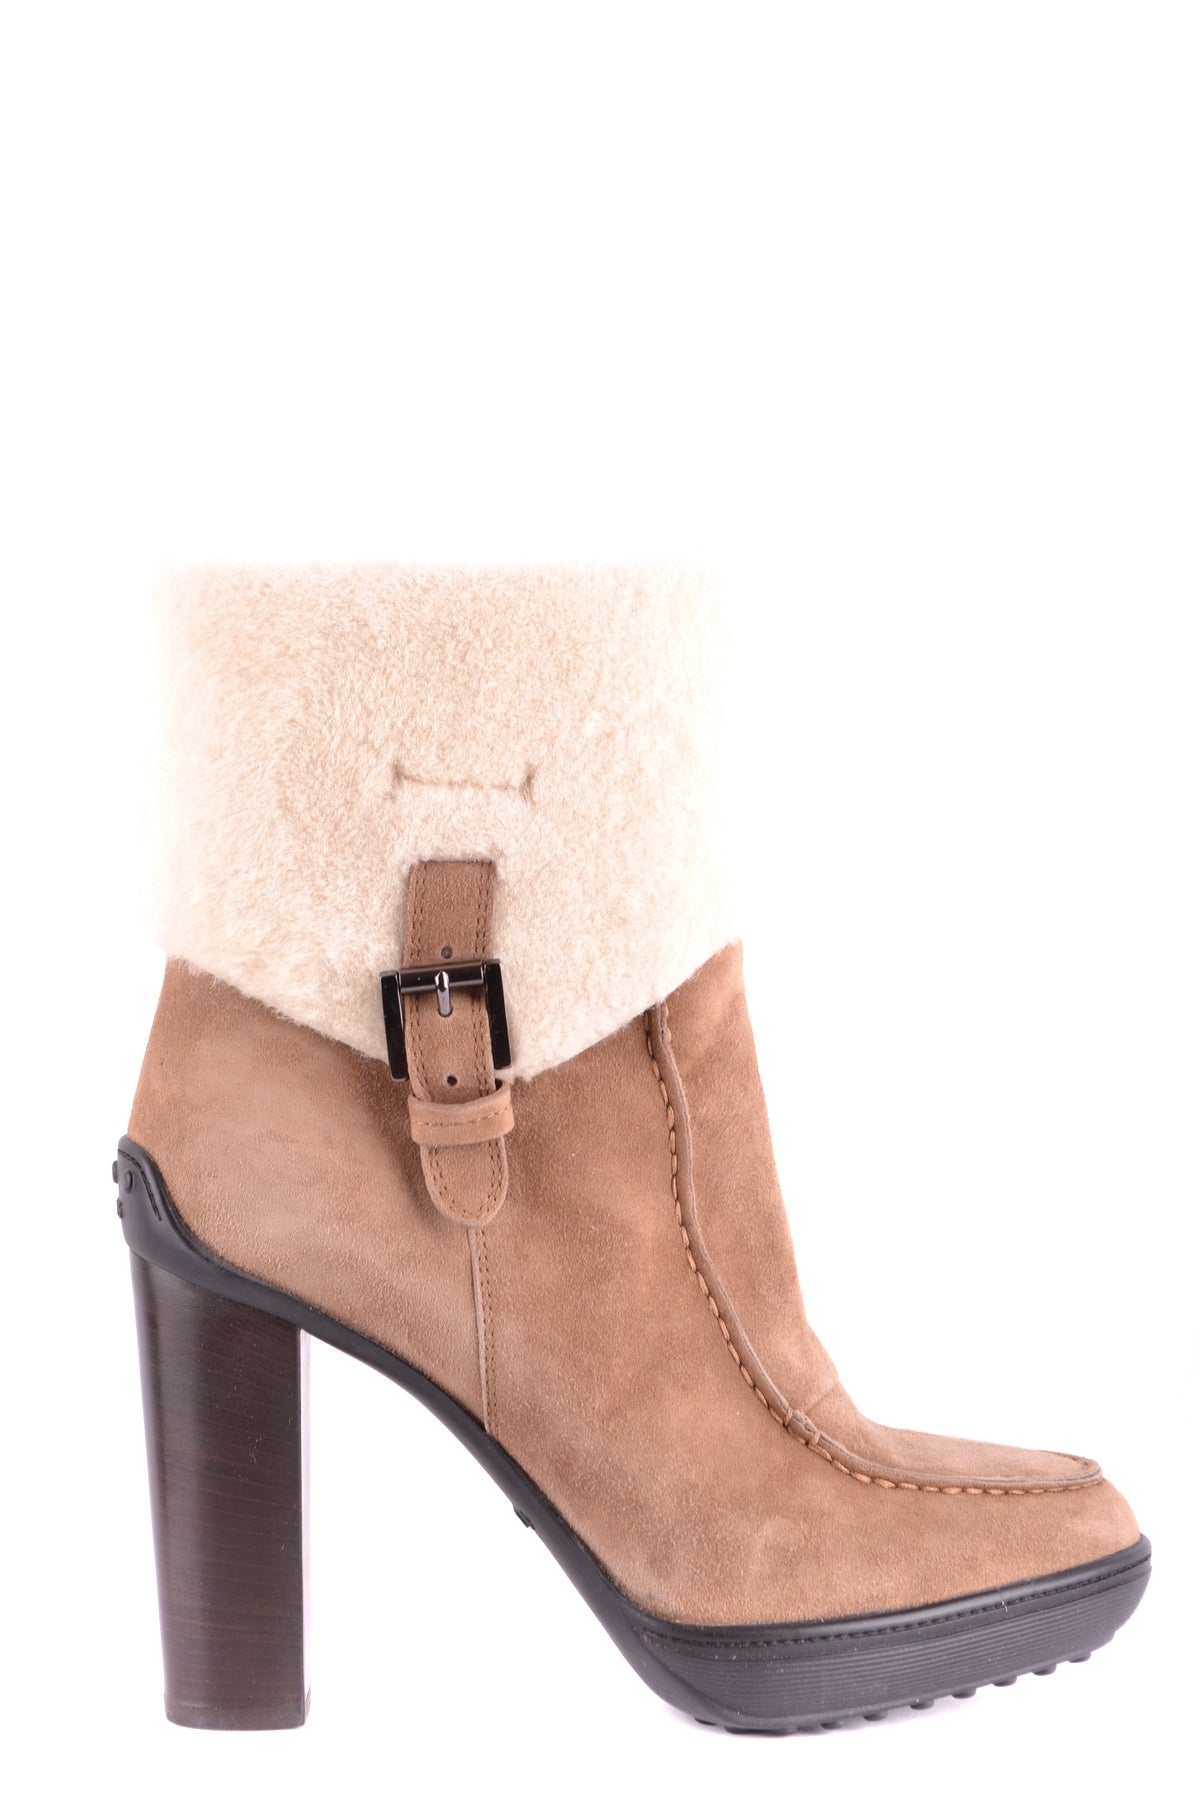 Shoes Tod'S-Boots with fur - WOMAN-37-Product Details Type Of Accessory: ShoesTerms: New With LabelYear: 2017Main Color: MarrónGender: WomanMade In: ItalySize: EuSeason: Fall / WinterComposition: Leather 100%-Keyomi-Sook